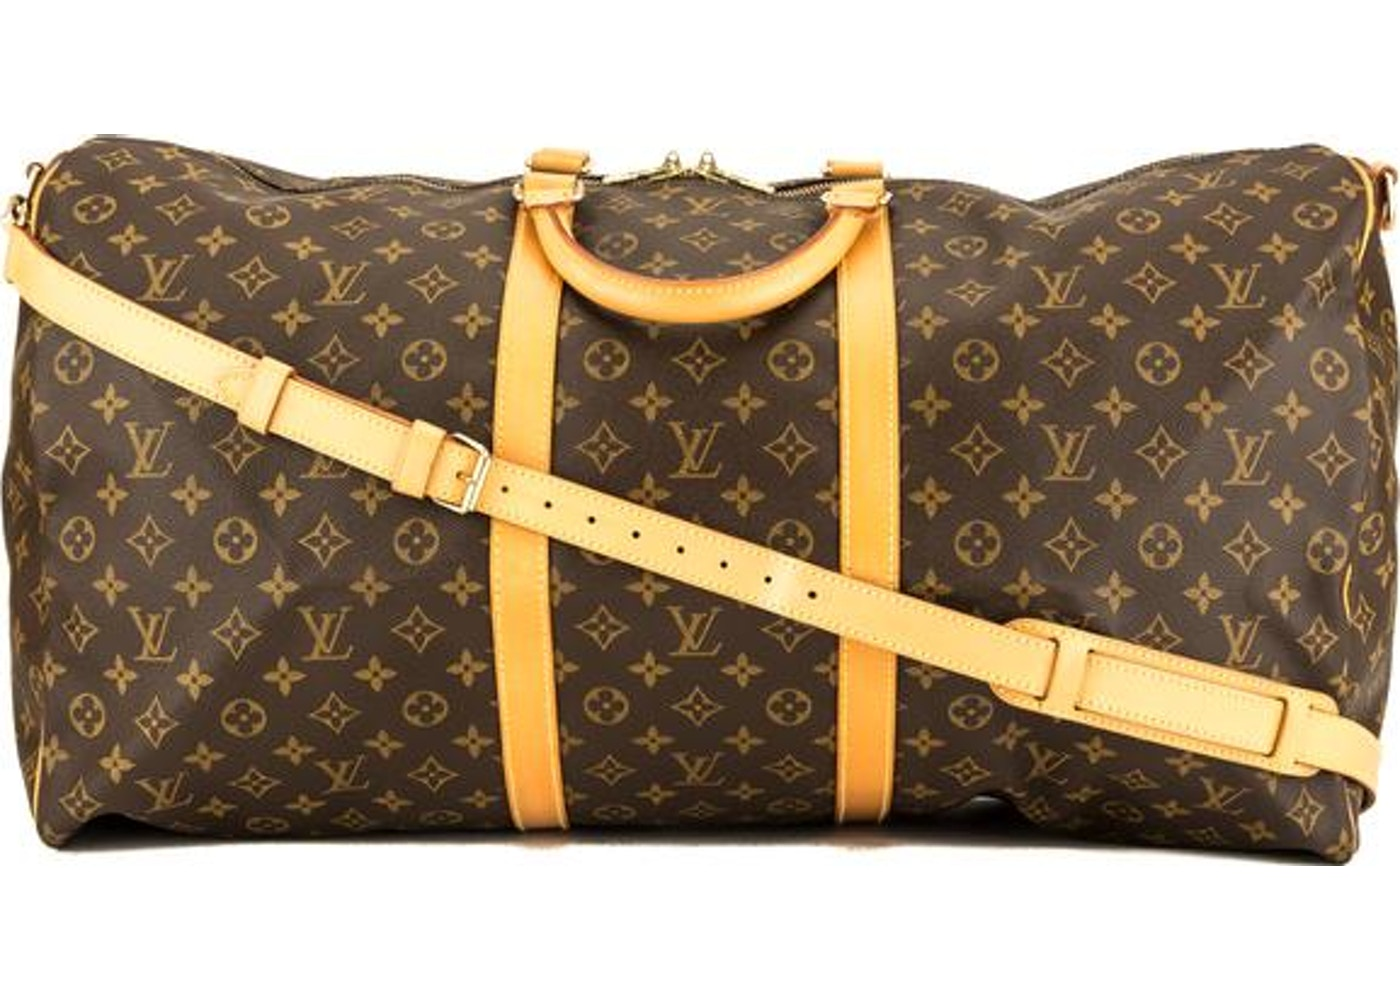 6ec915dd9 Louis Vuitton Keepall Bandouliere Monogram (Without Accessories) 60 Brown.  Monogram (Without Accessories) 60 Brown